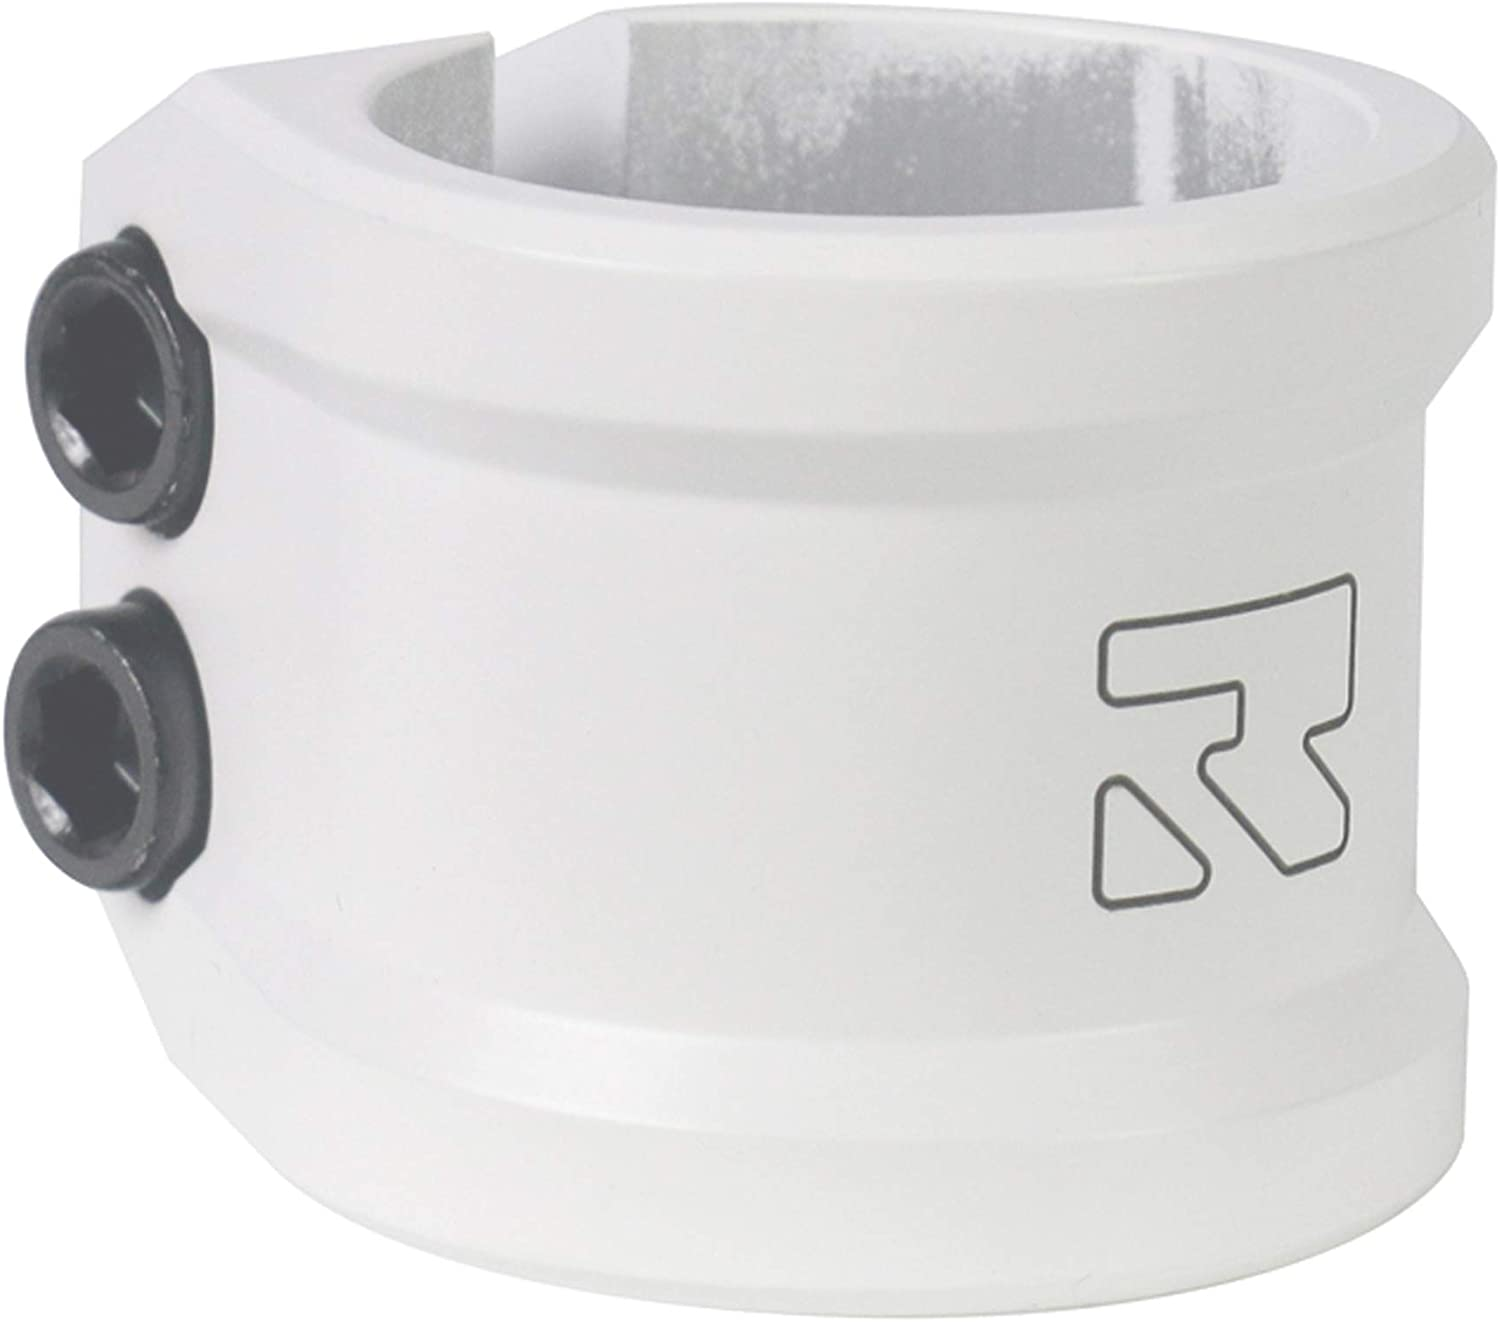 Root Industries Lithium Scooter Clamps - Pro Scooter Double Clamp - Compatible with Standard/Oversized Handlebars 2-Bolt 6mm Compression for Trick ...